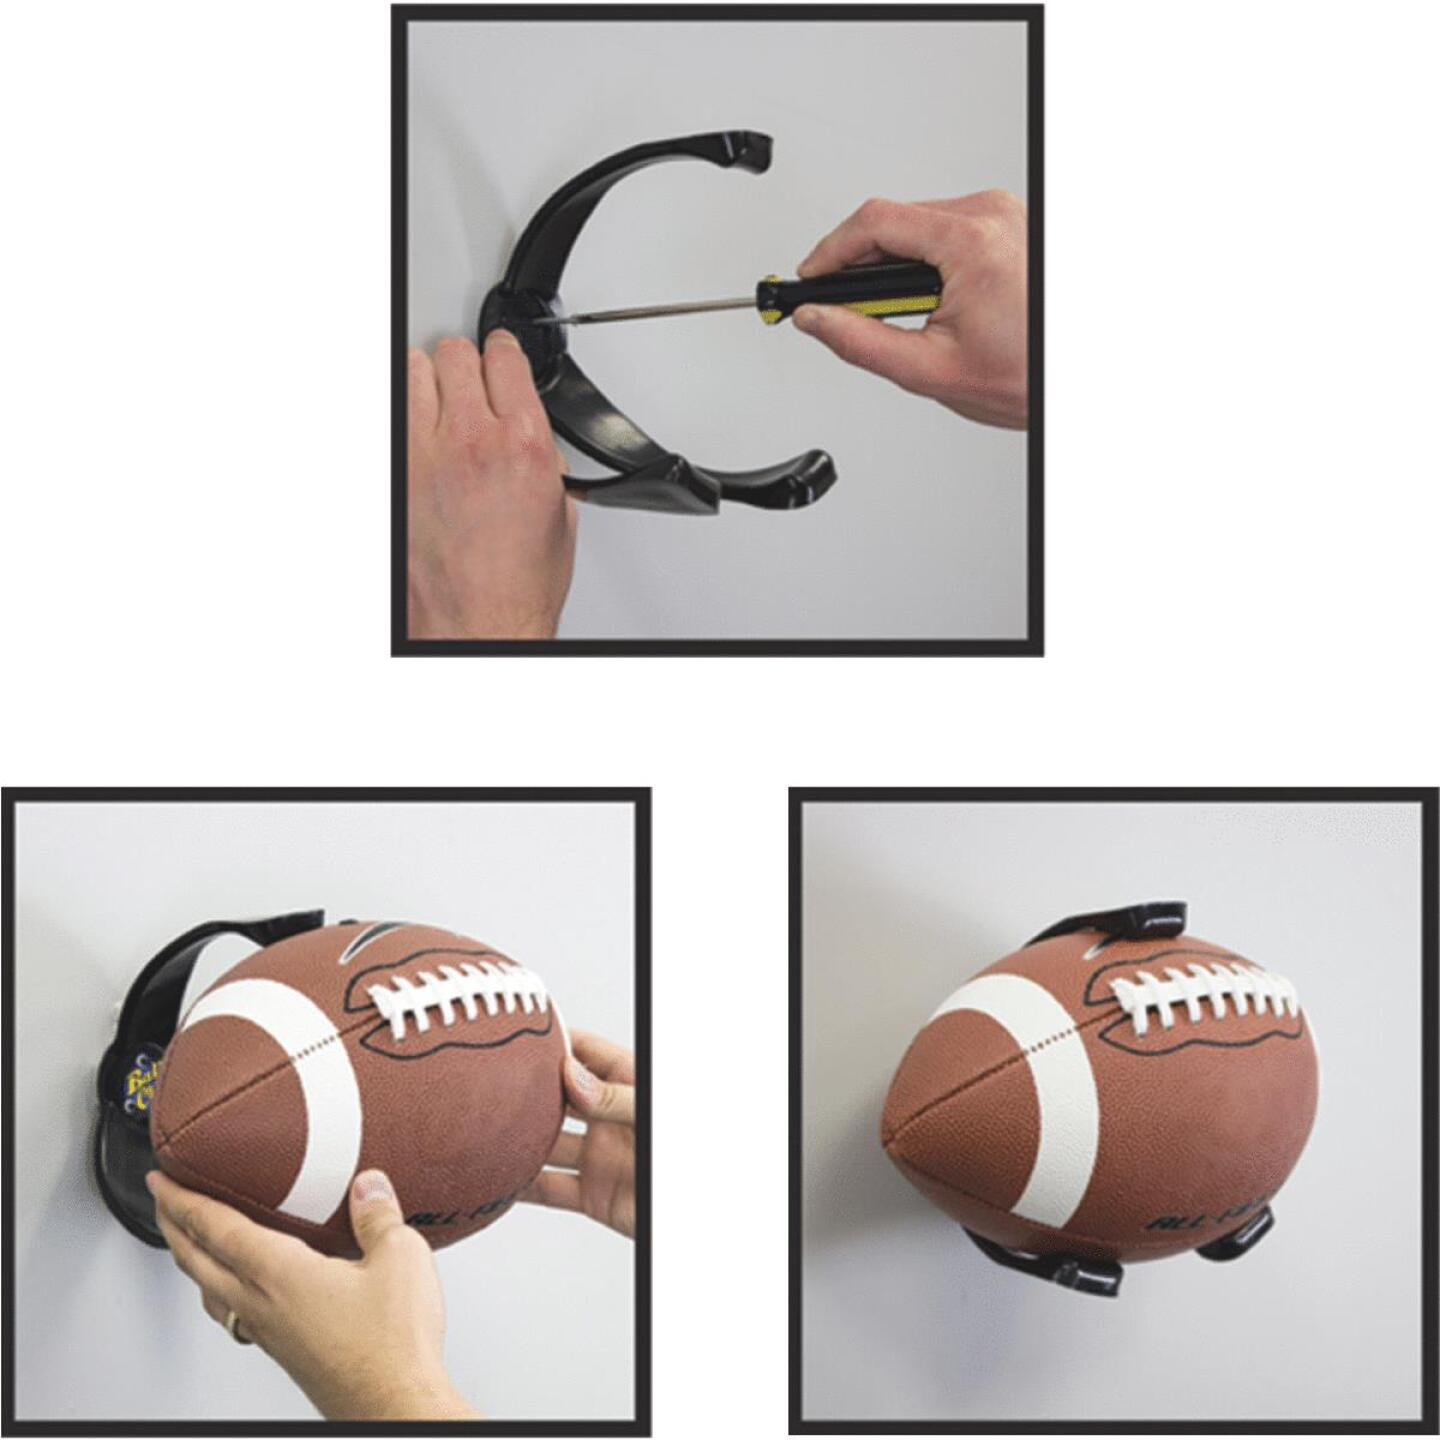 Ball Claw 5-1/4 In. W x 6-3/4 In. H. x 6-3/8 In. D. Football Storage Rack Image 1